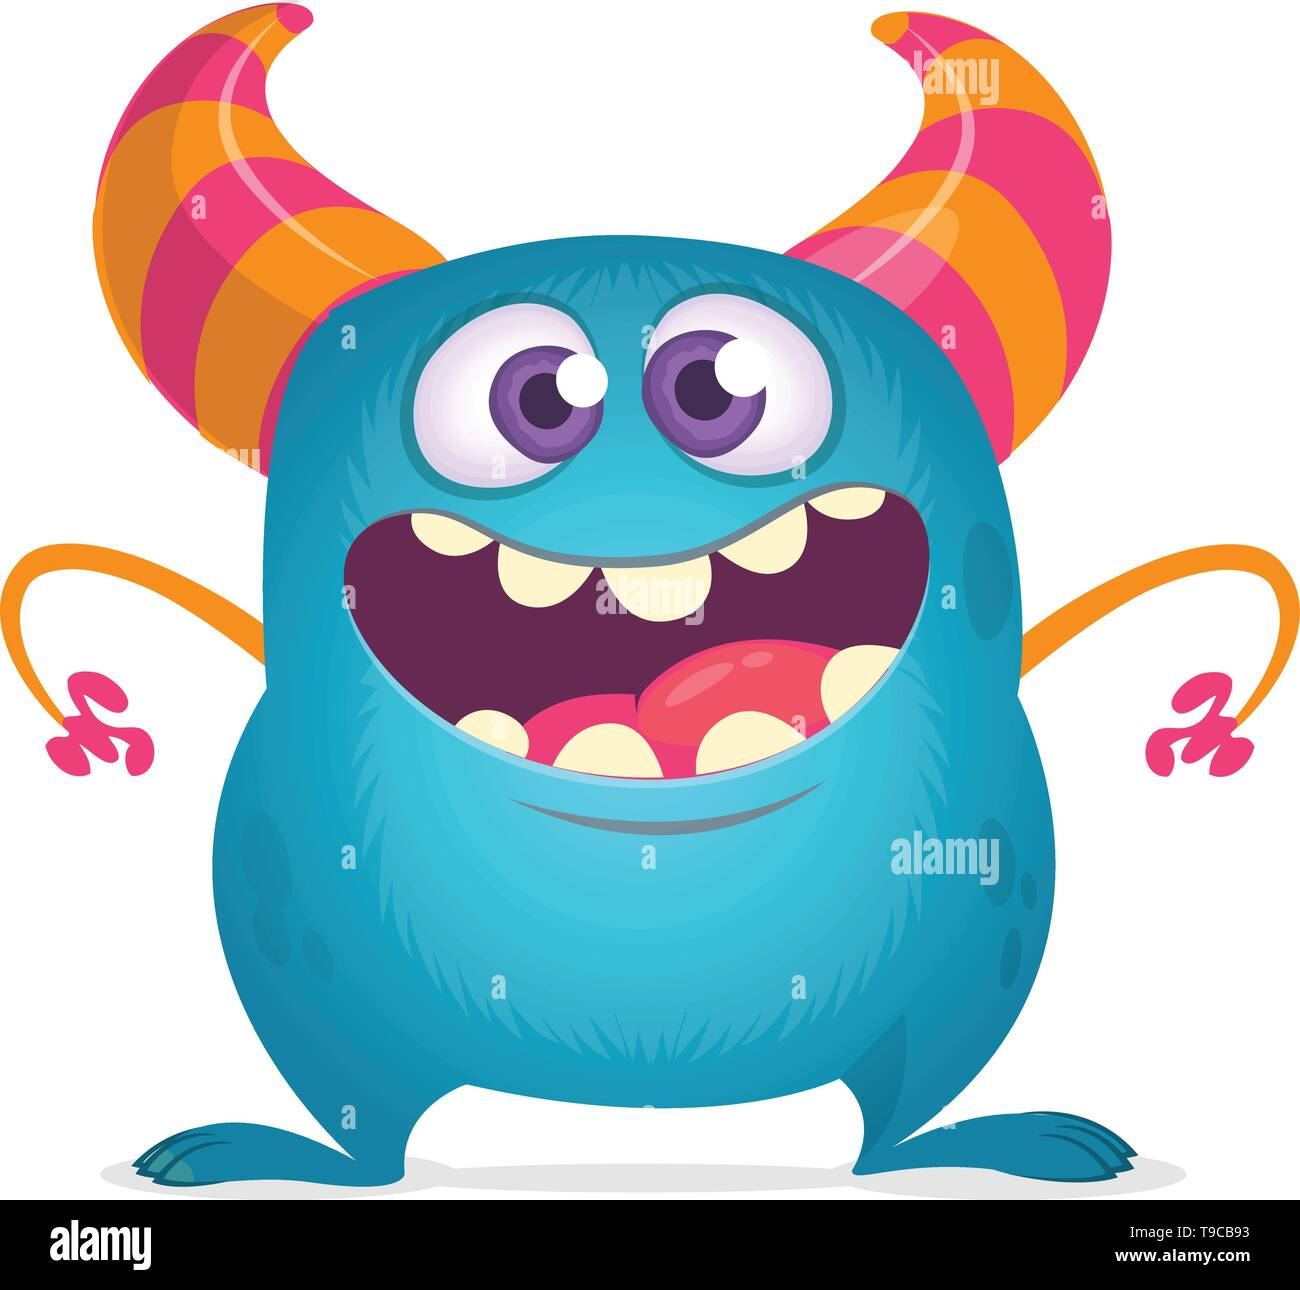 Funny cartoon monster with big mouth. Vector blue monster illustration. Halloween design - Stock Image